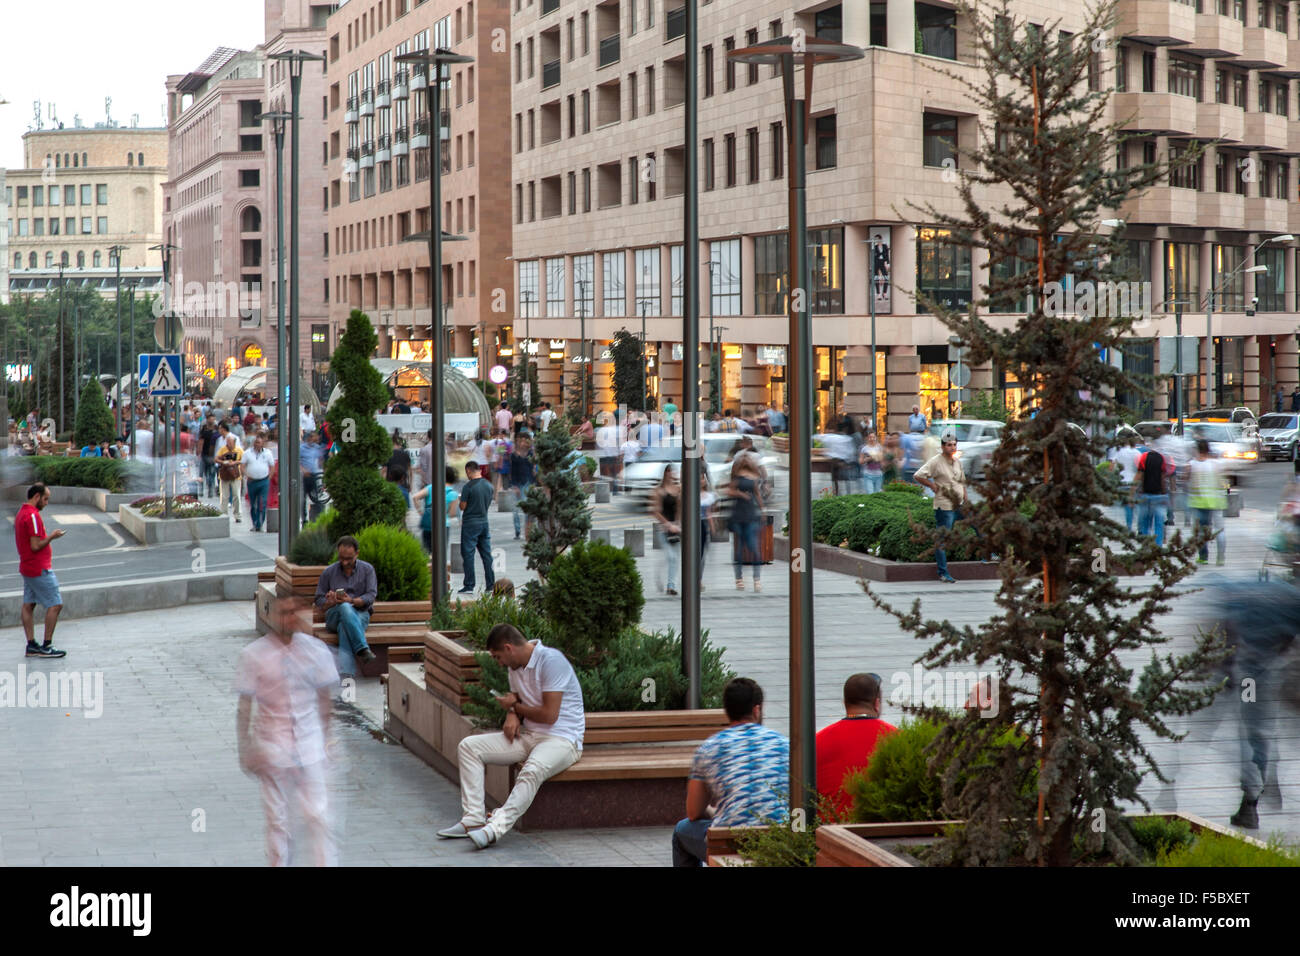 Pedestrians walking along Northern Avenue, a pedestrian street in Yerevan, the capital of Armenia. - Stock Image